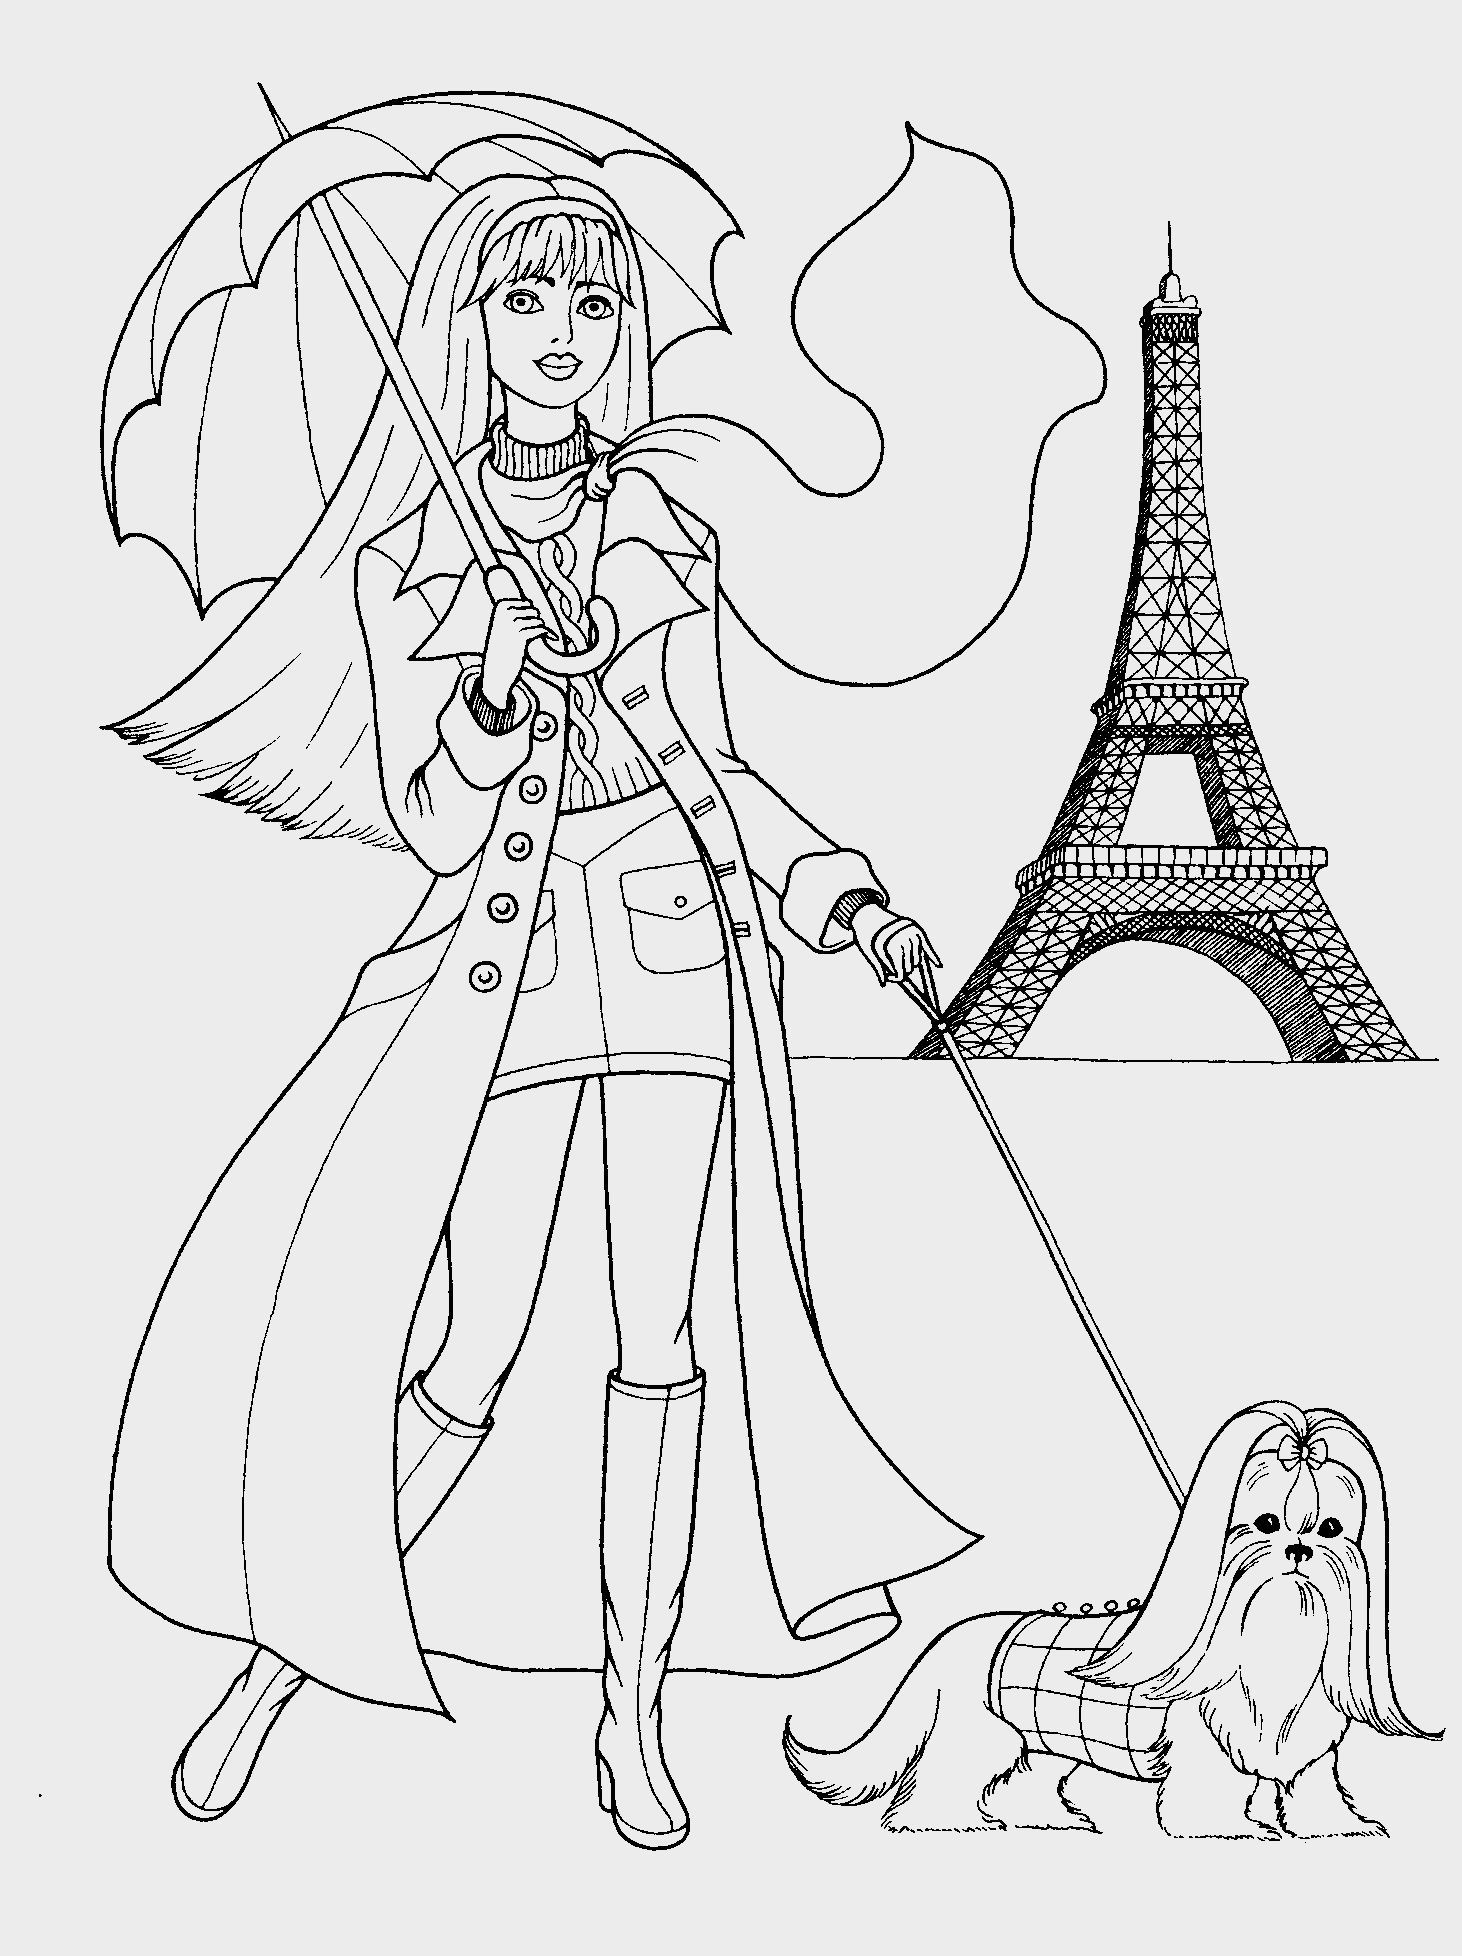 Coloring Page For Girls | Coloring Pages | Pinterest